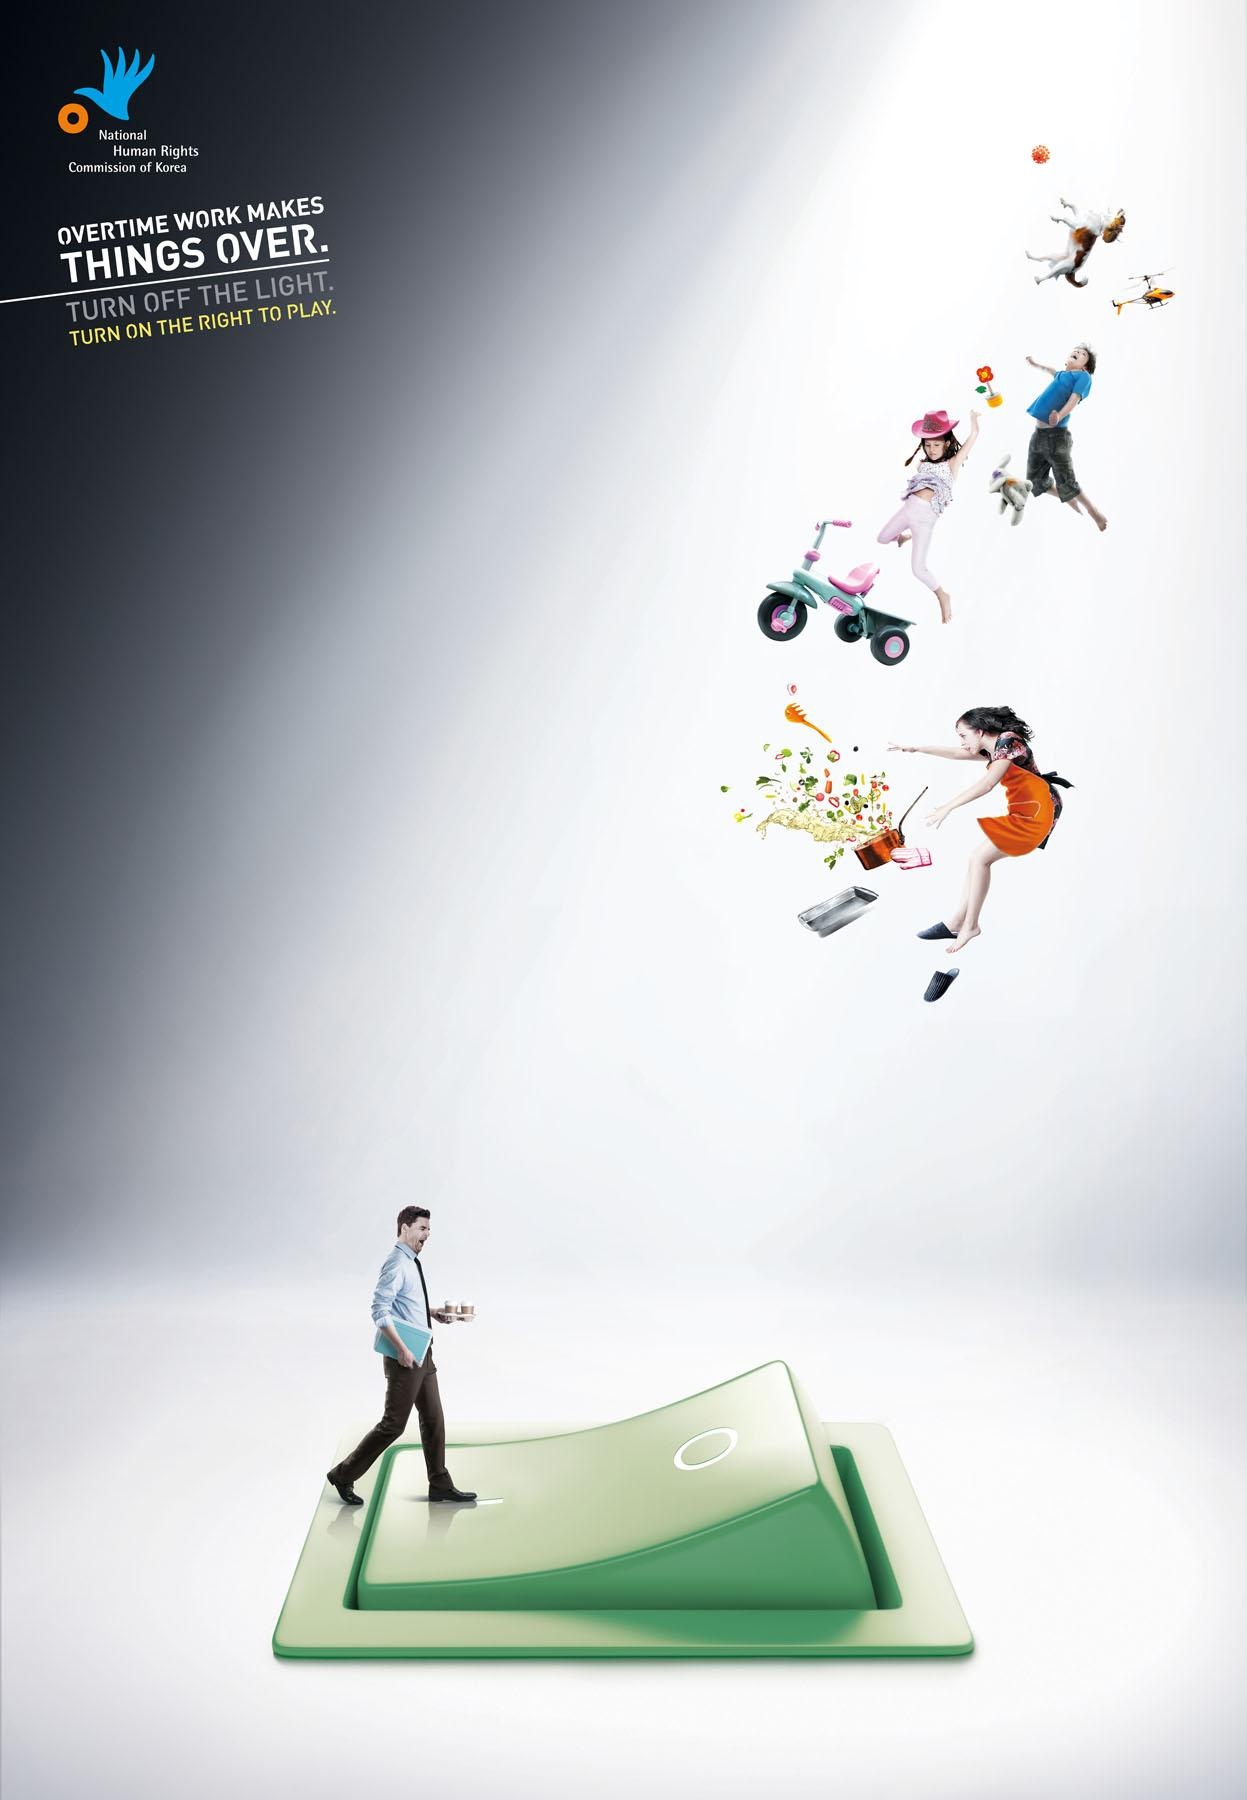 National Human Rights Commission of Korea Print Ad -  Overtime, 1